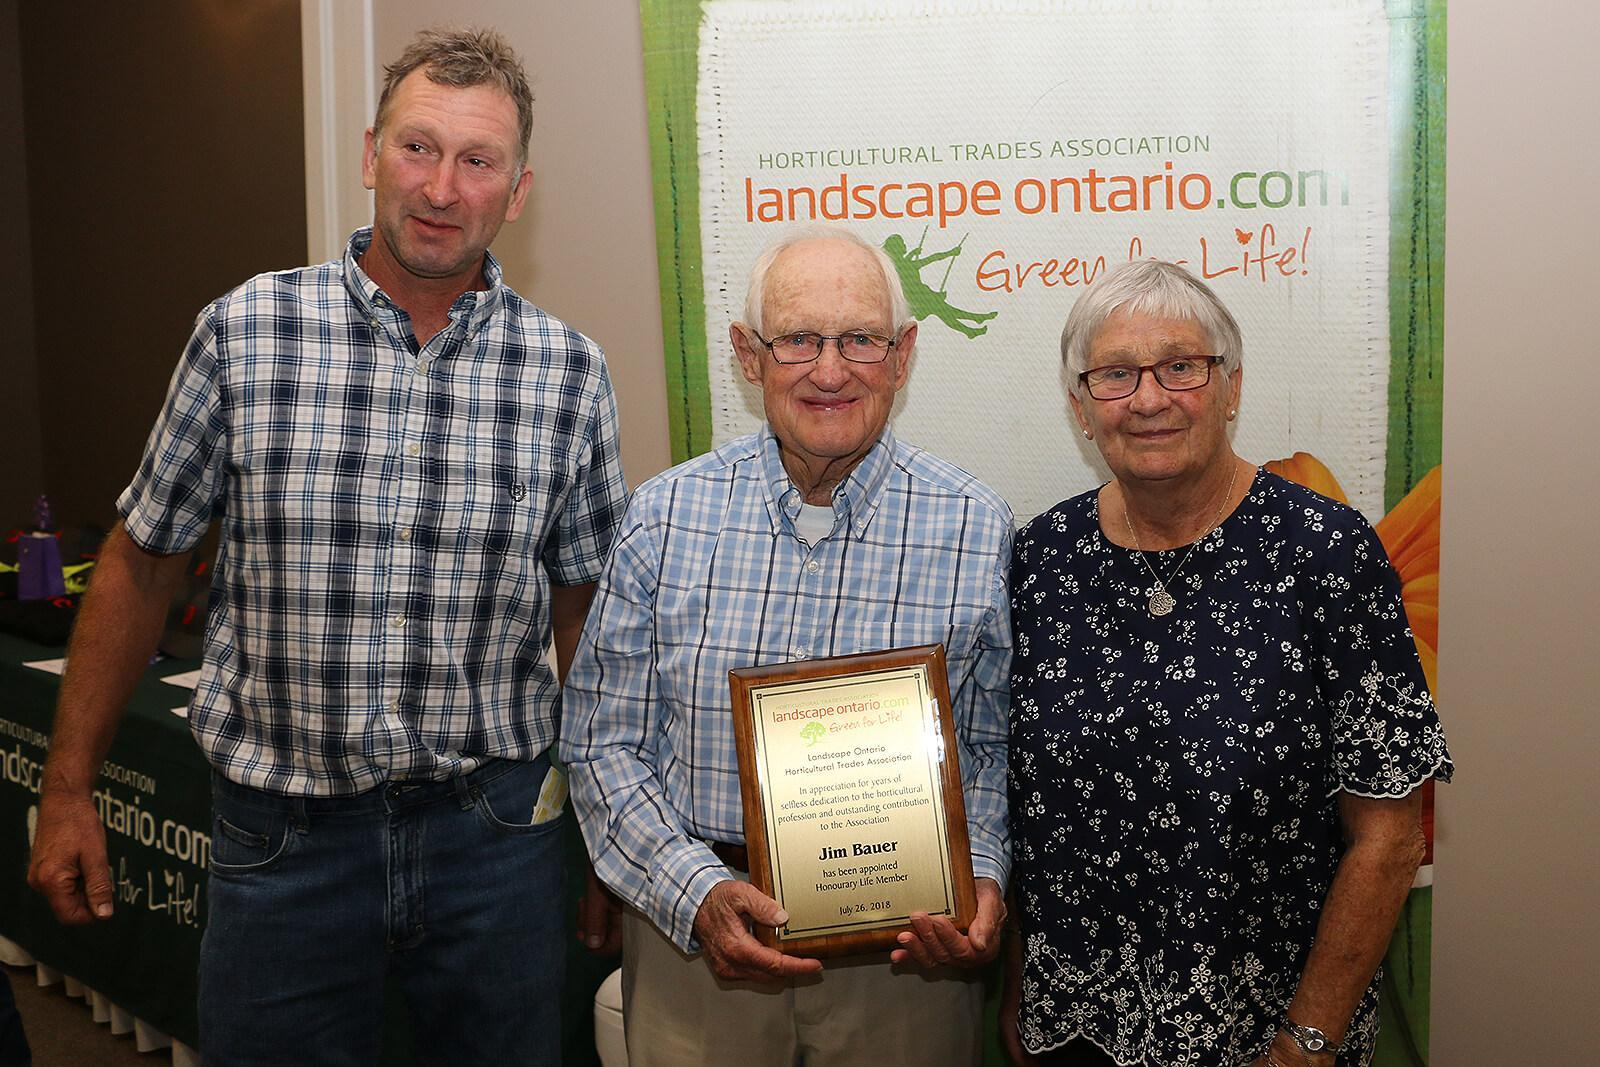 Ottawa Chapter founder honoured with special award